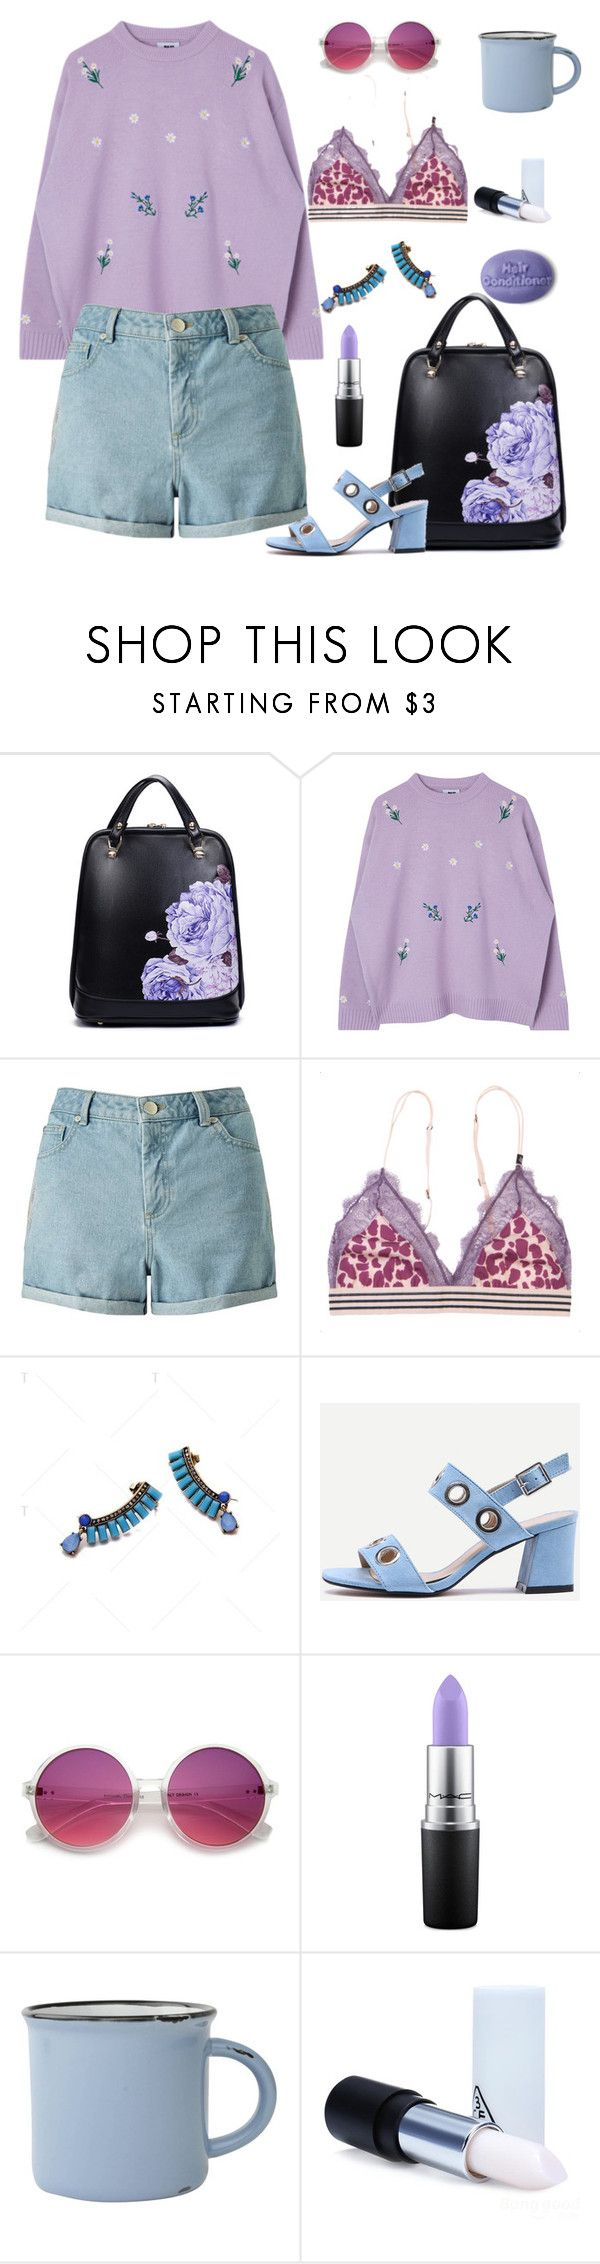 """""""floral bag"""" by lianafourmouzi ❤ liked on Polyvore featuring Miss Selfridge, LoveStories, MAC Cosmetics, canvas and 3 Concept Eyes"""